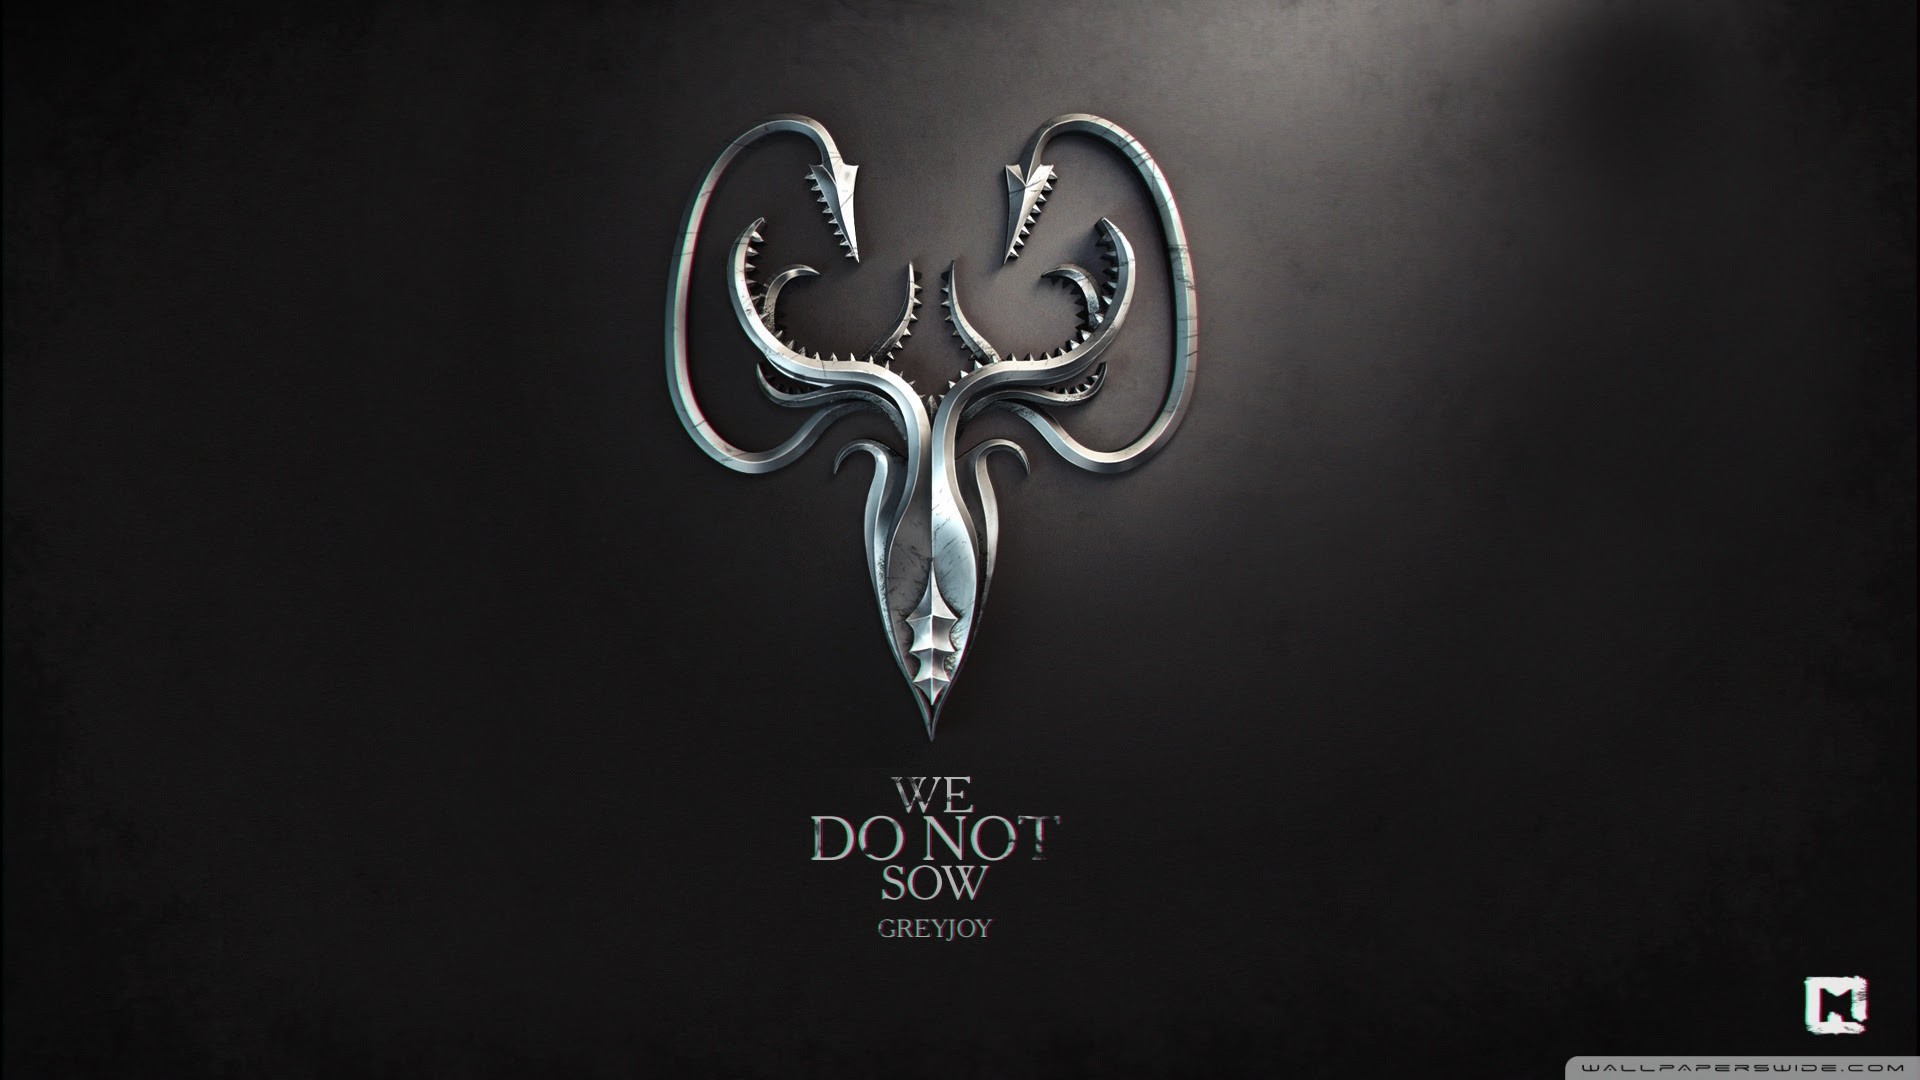 Game Of Thrones We Do Not Sow Greyjoy Ultra Hd Desktop Background